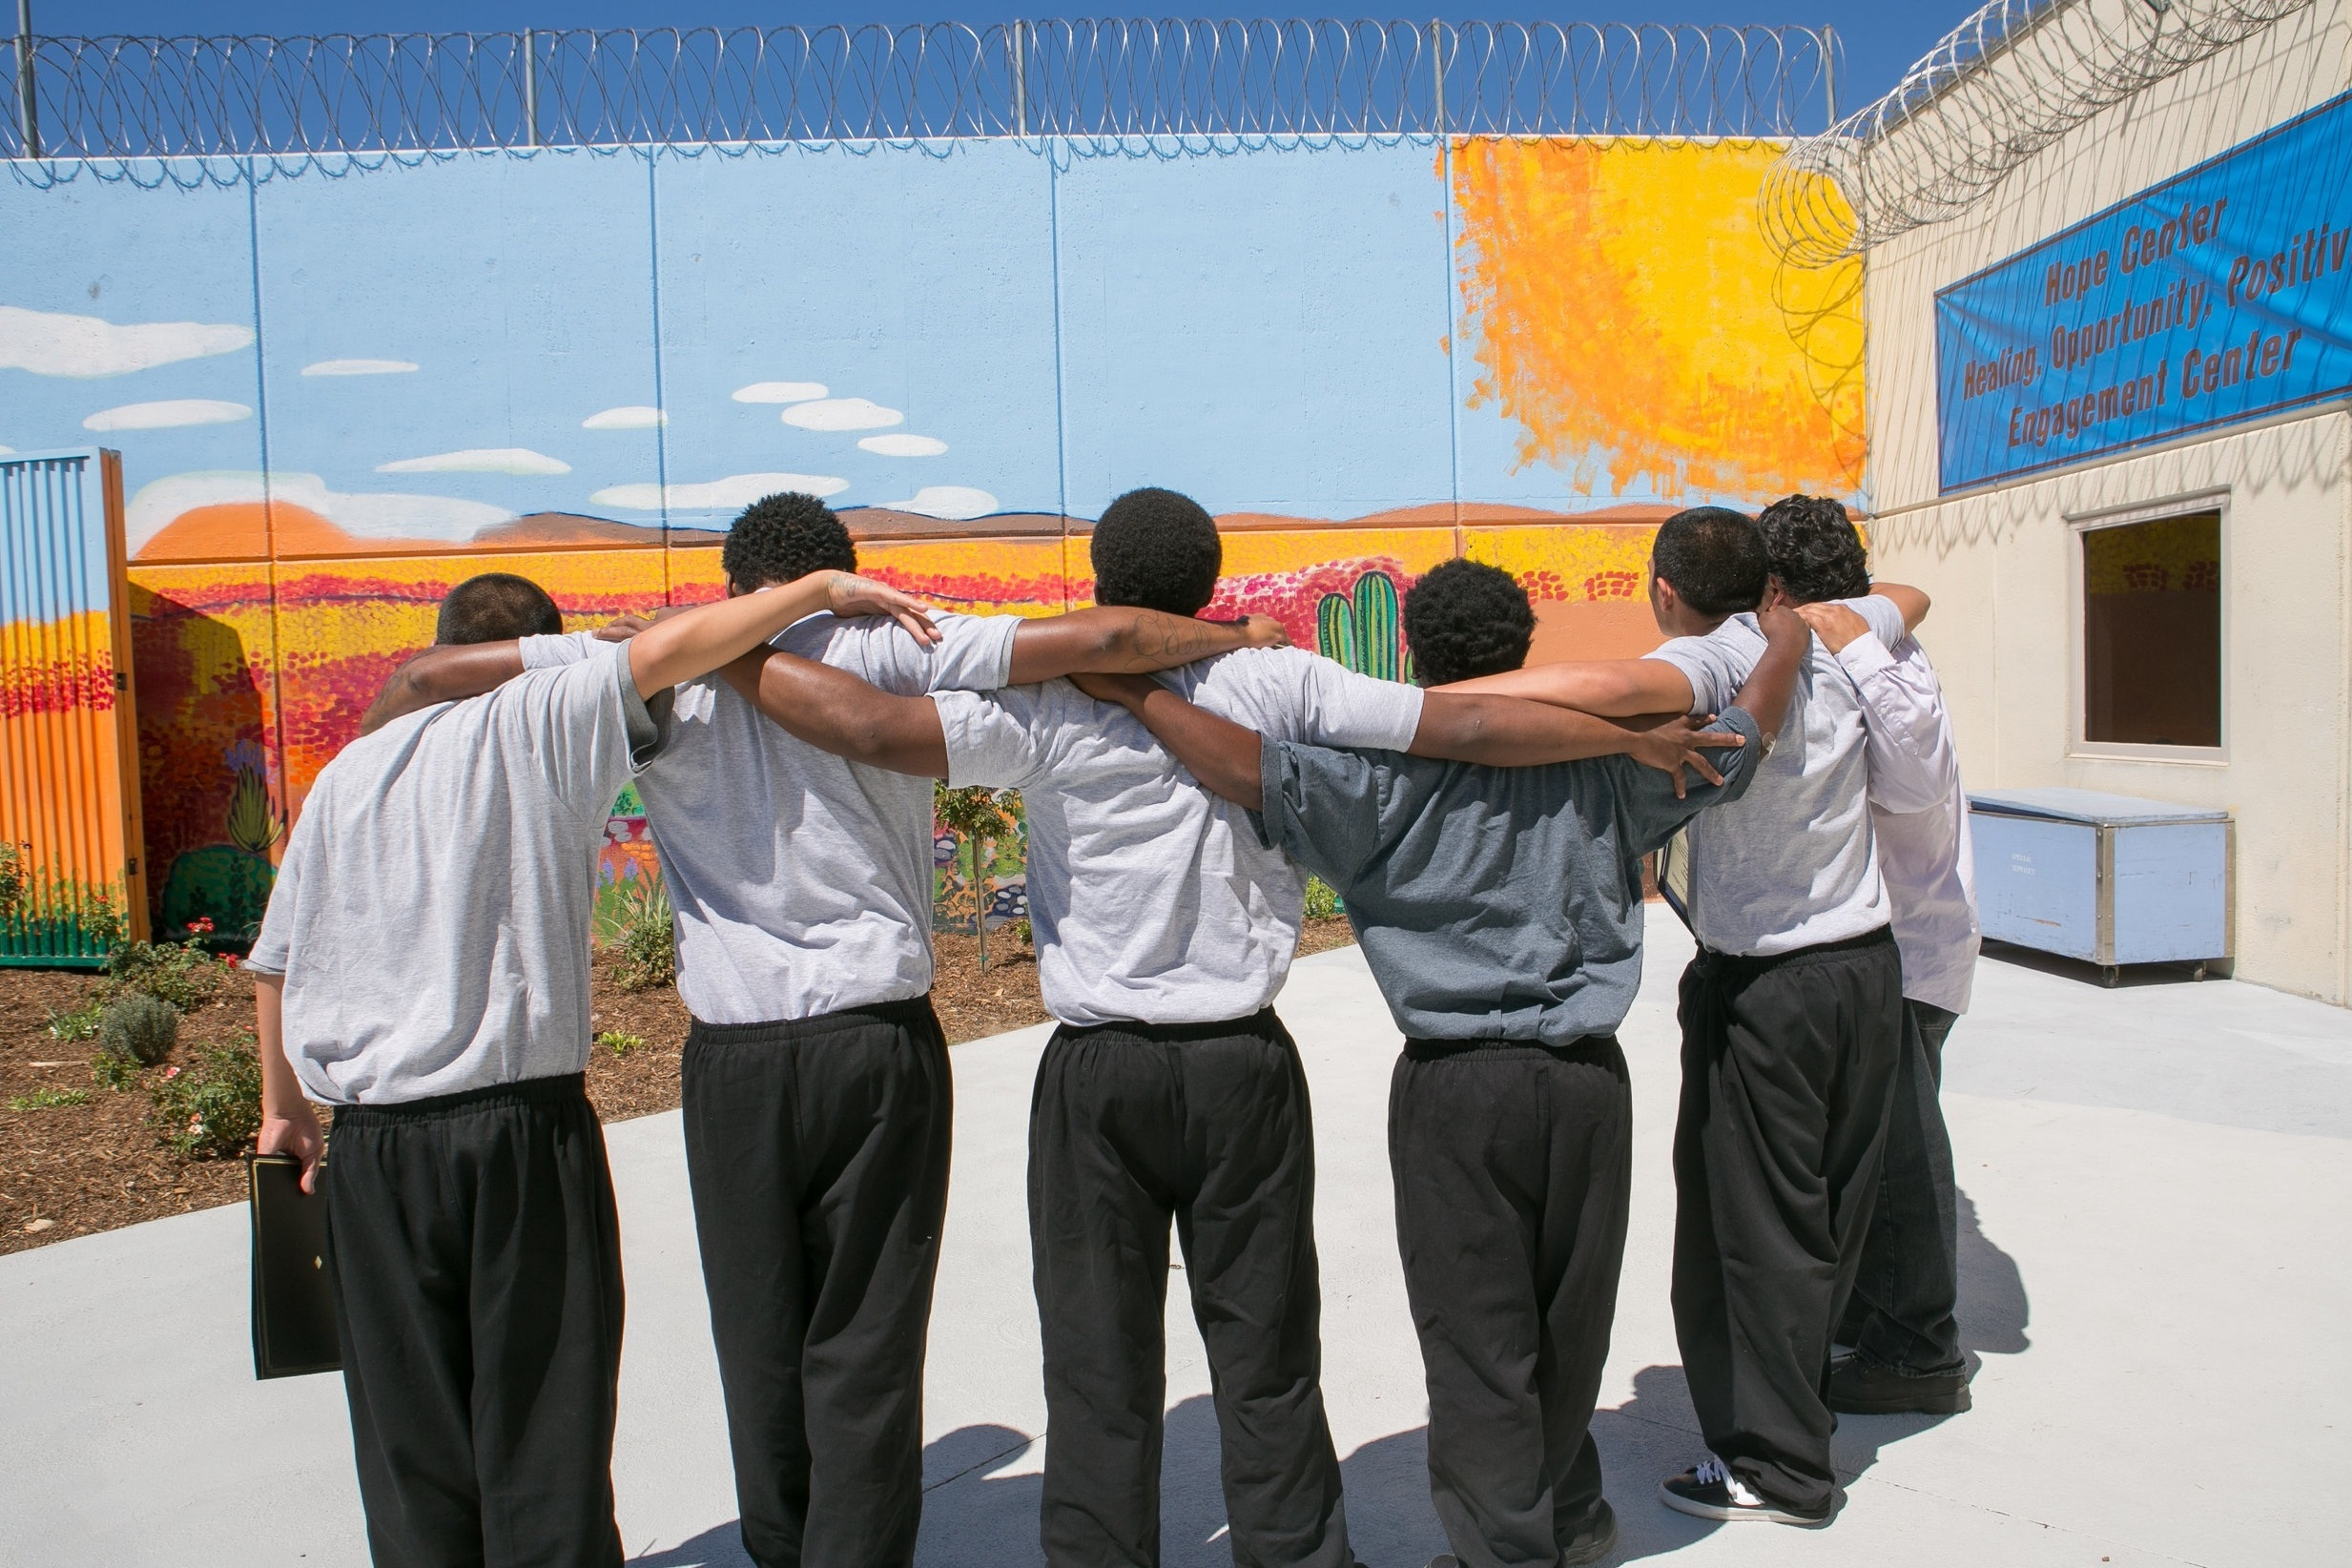 Students at Camp Challenger, as the mural they created and painted is added to the Los Angeles Public Art records  Photo Credit: Cam Sanders